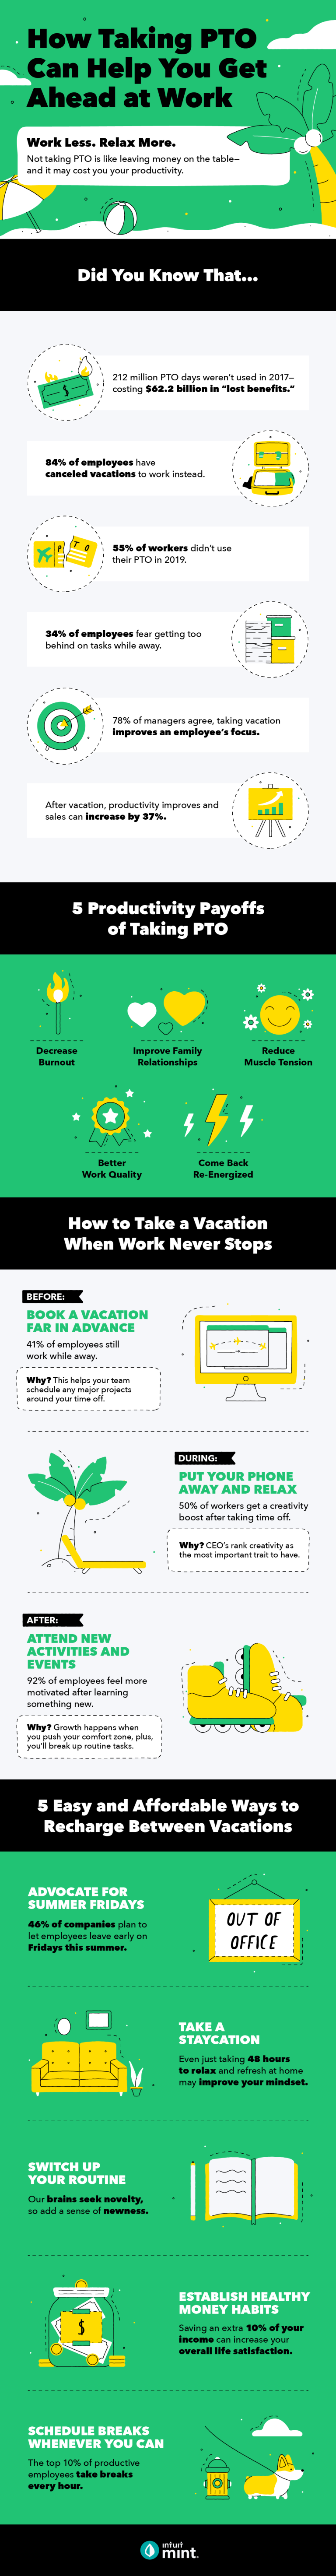 How Taking PTO Can Help You Get Ahead at Work #infographic